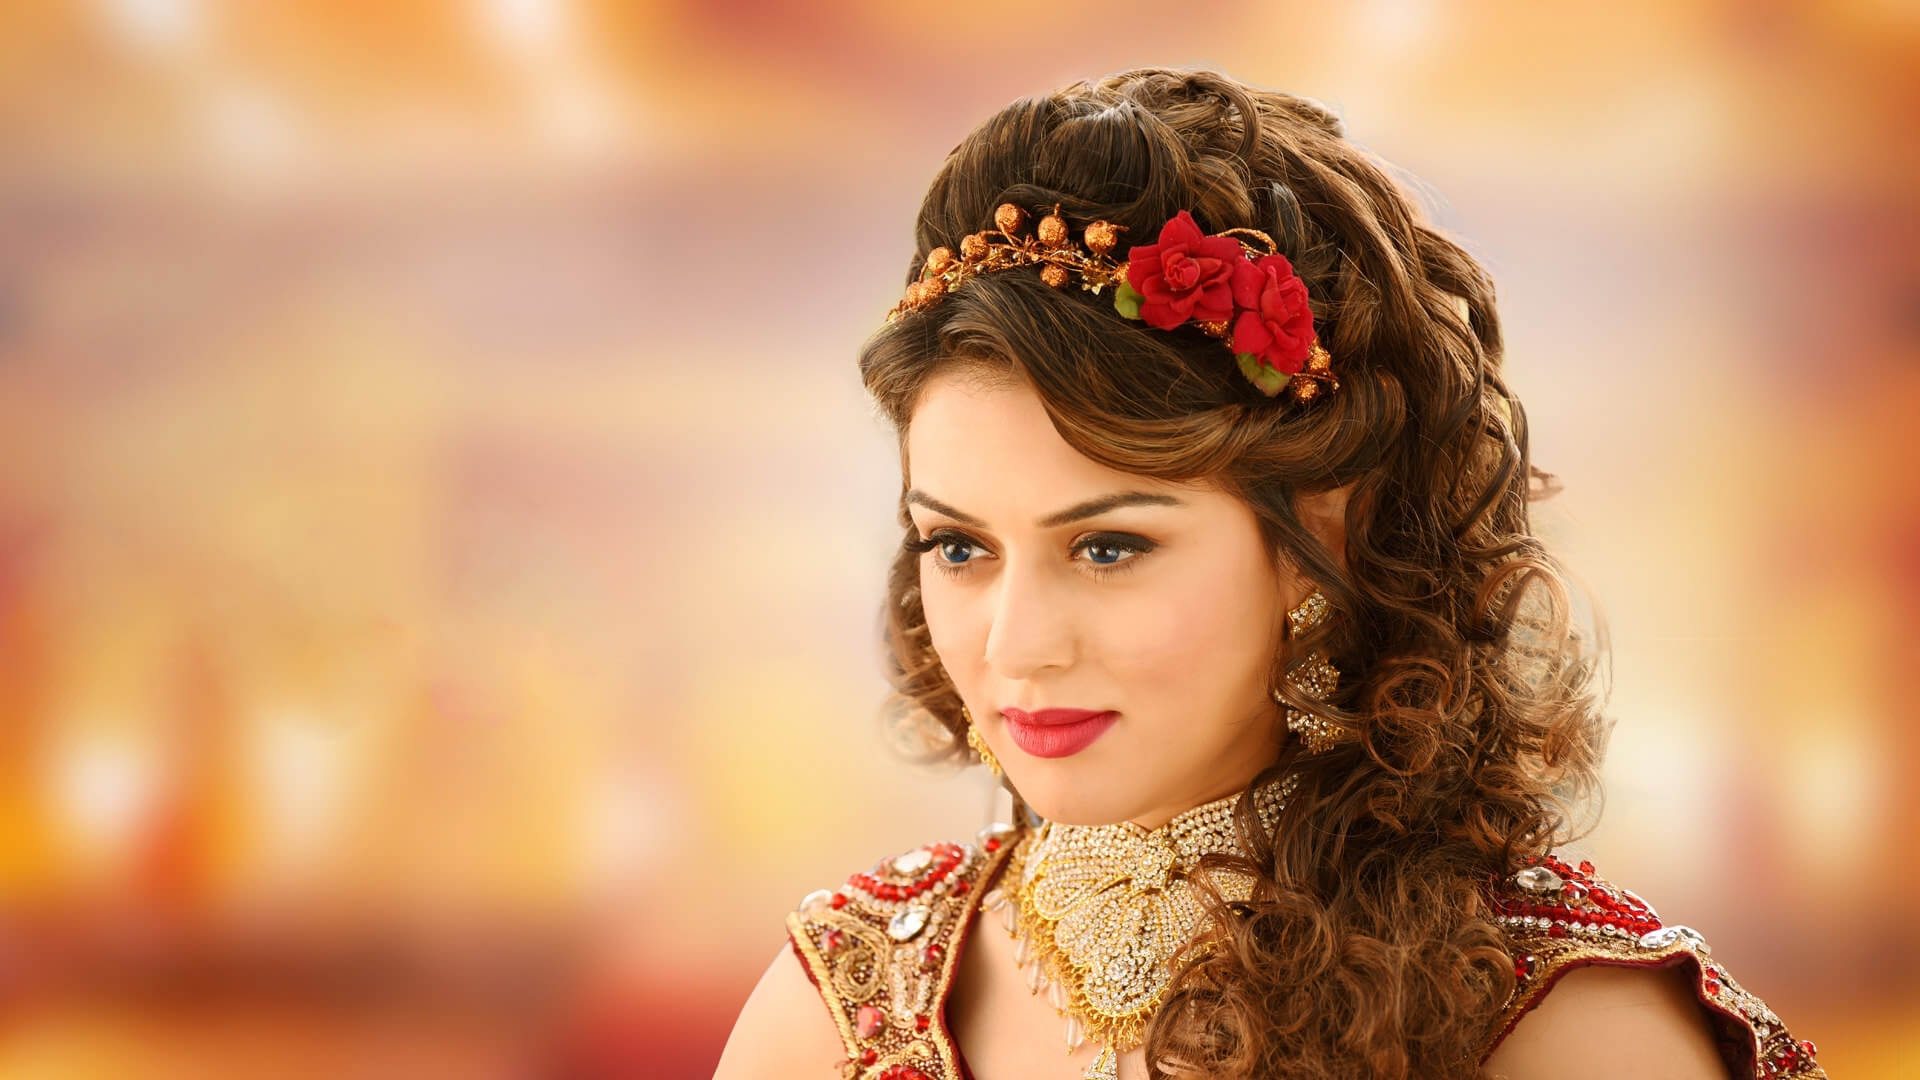 Download Wallpaper Necklace Red Lipstick Indian Actress India